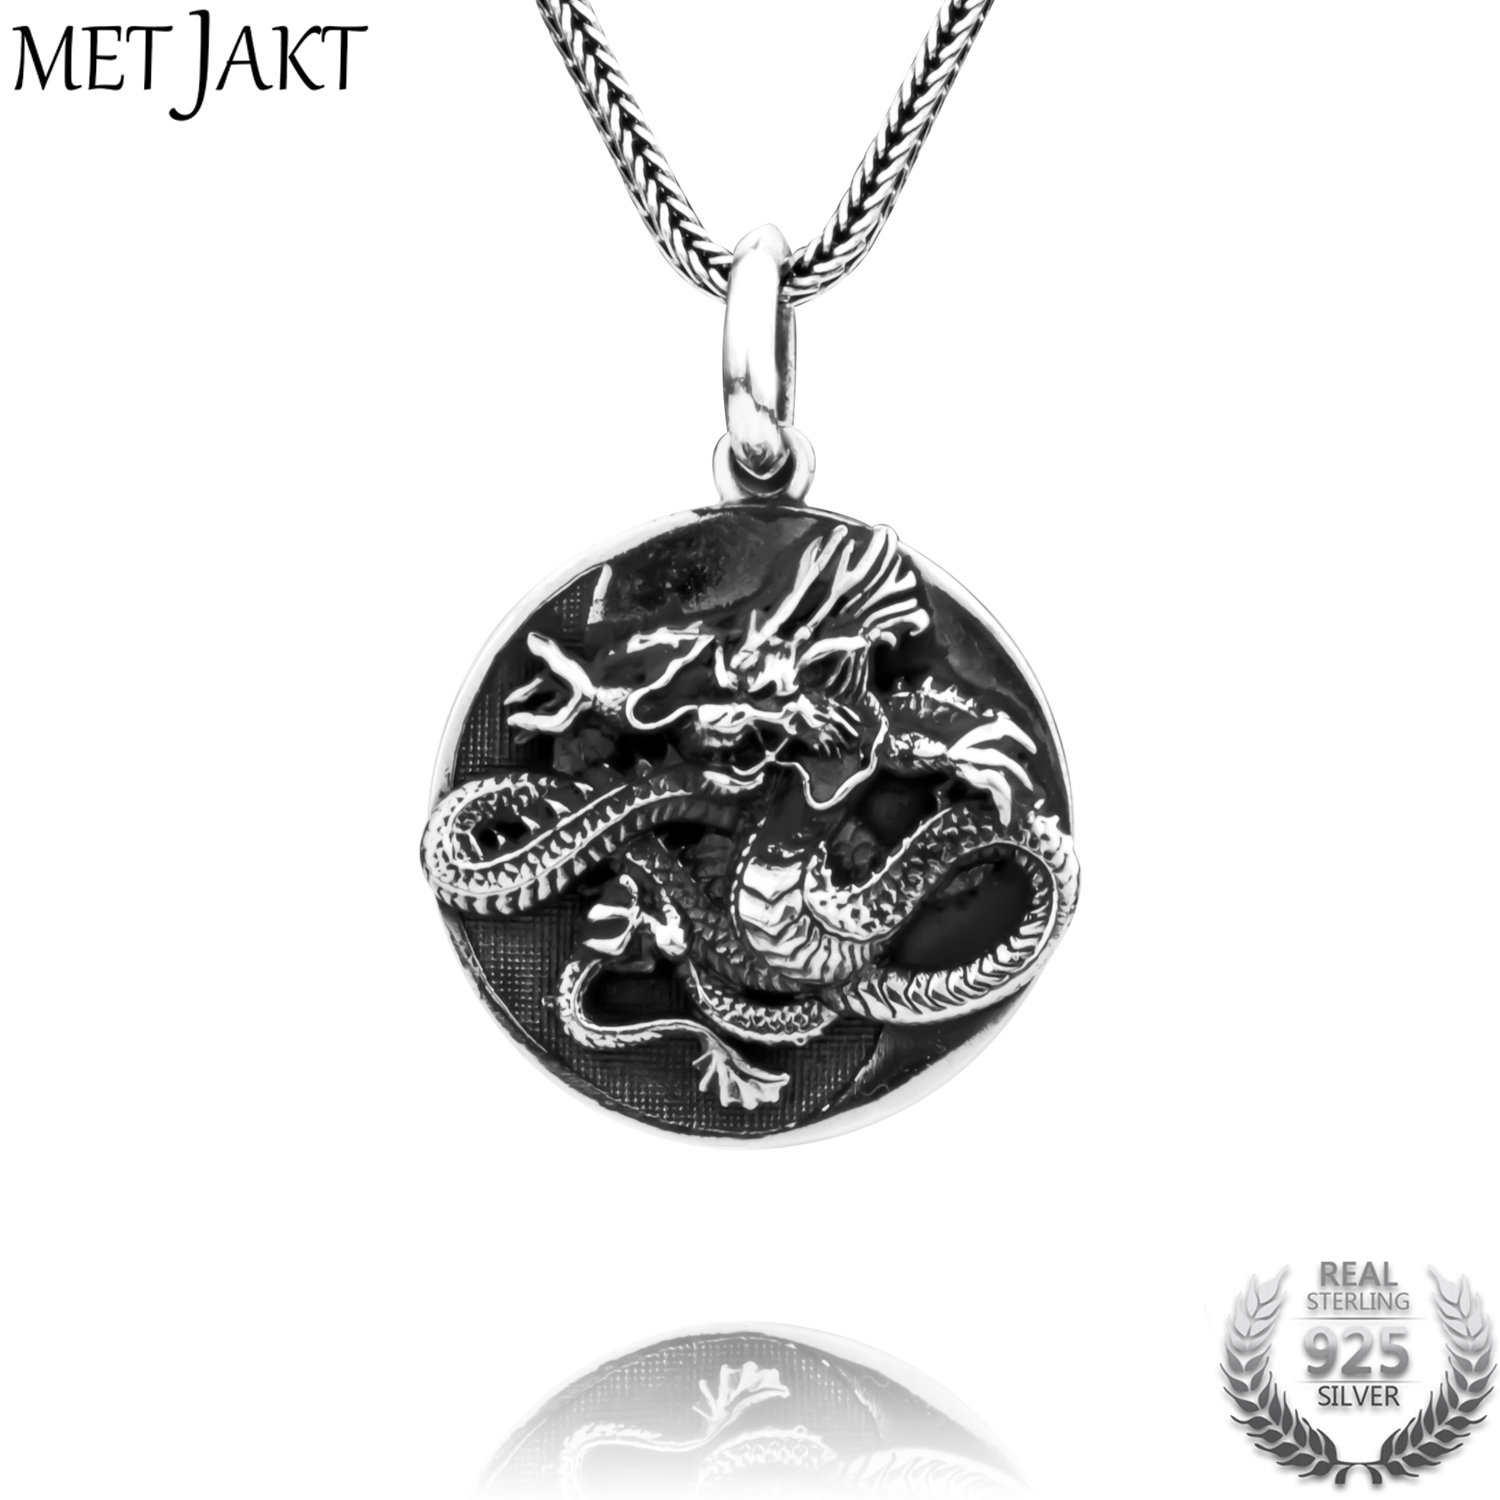 MetJakt Handmade 925 Sterling Silver Dragon Pendant Necklace Vintage Tai Chi Gossip Pendant for Men s